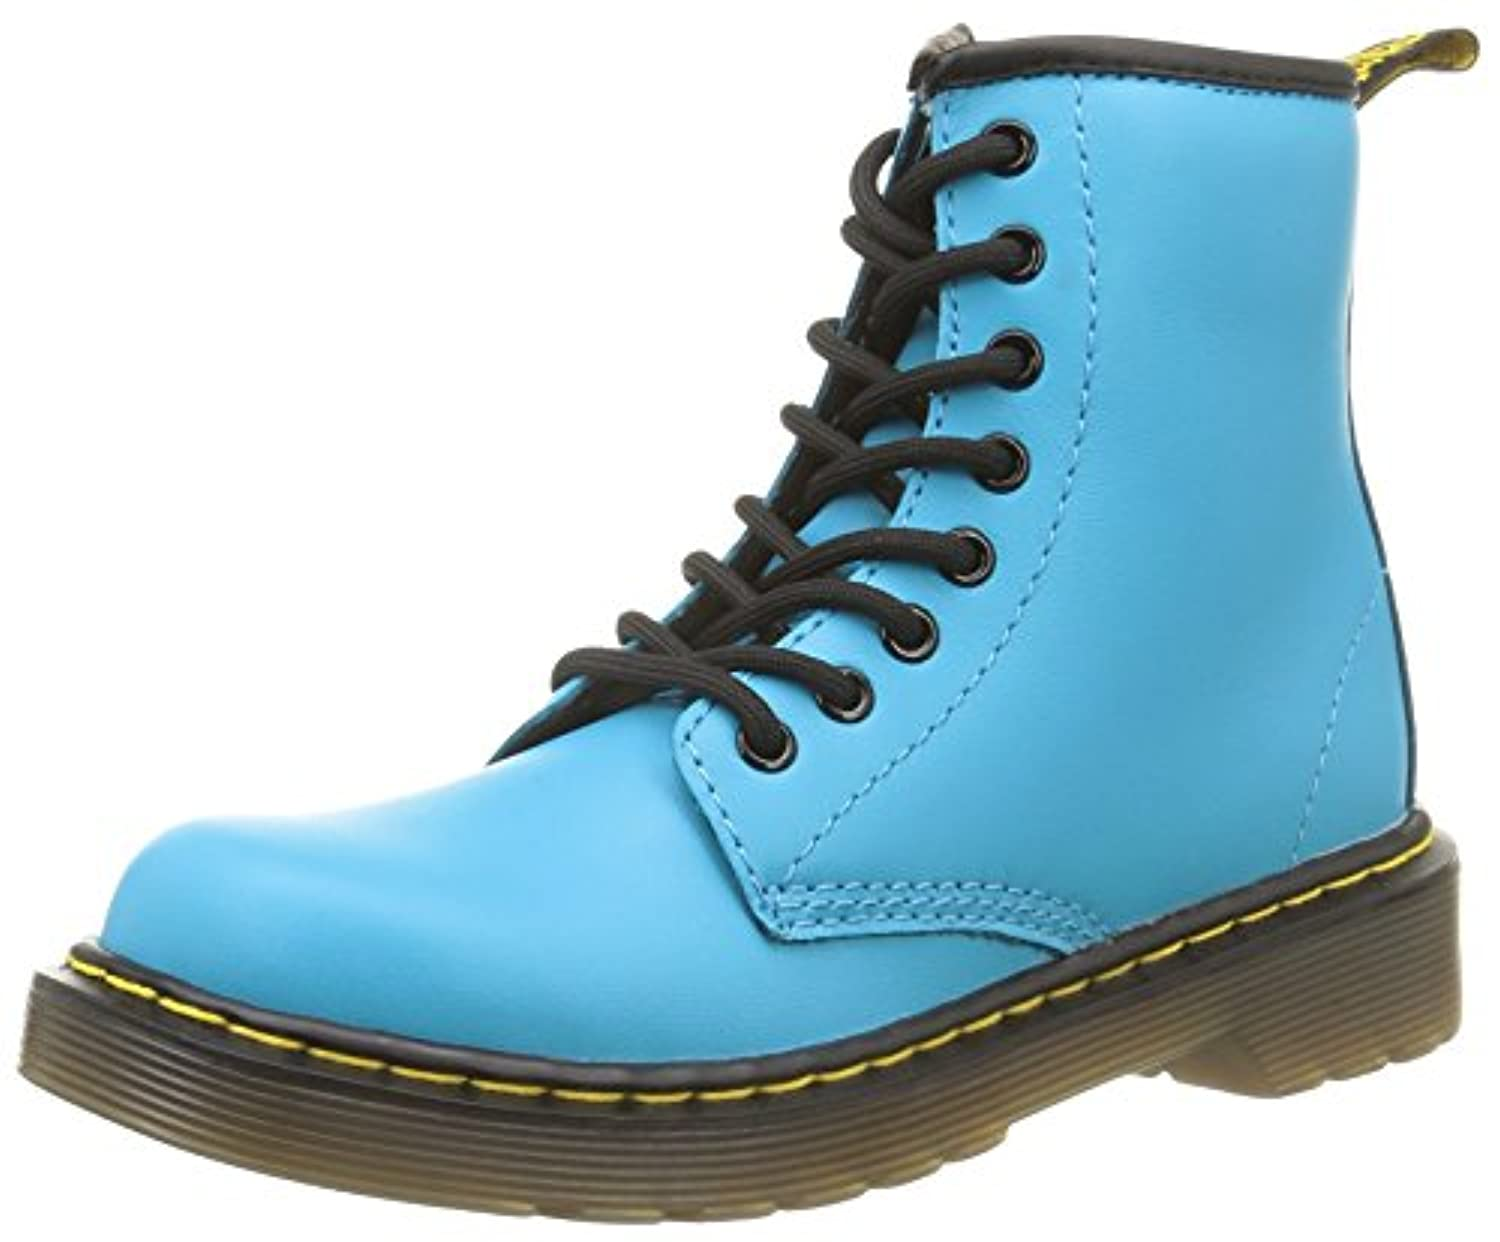 Dr. Martens Delaney Softy T Wild Aqua, Unisex Kids' Boat Shoes, Blue (wild Aqua), 30 EU (11.5 Child UK)